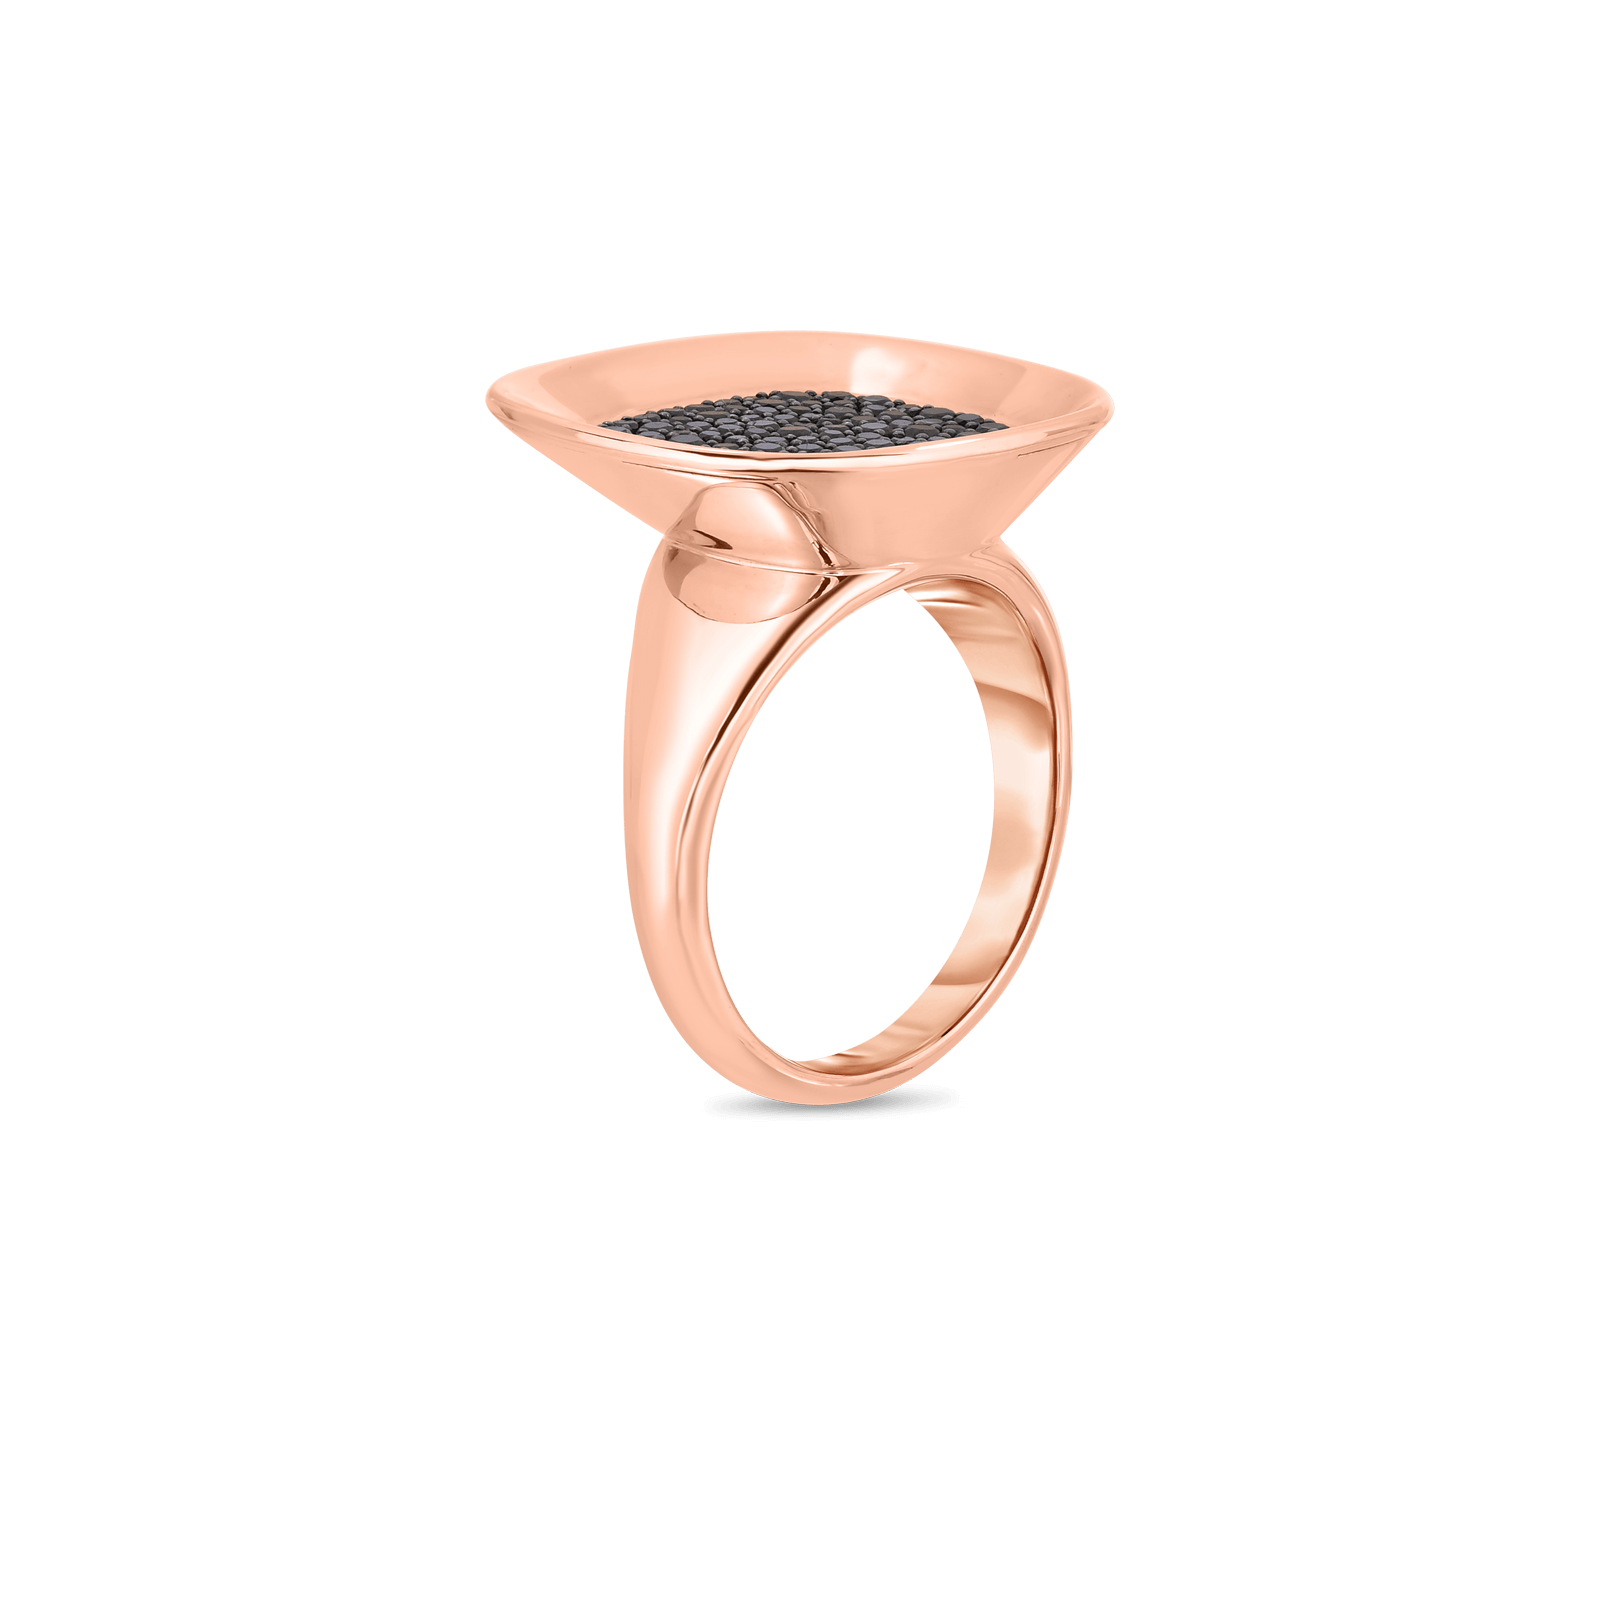 Roberto-Coin-18k-rose-gold-Small Ring with Black Diamonds-8882192AB65Balt